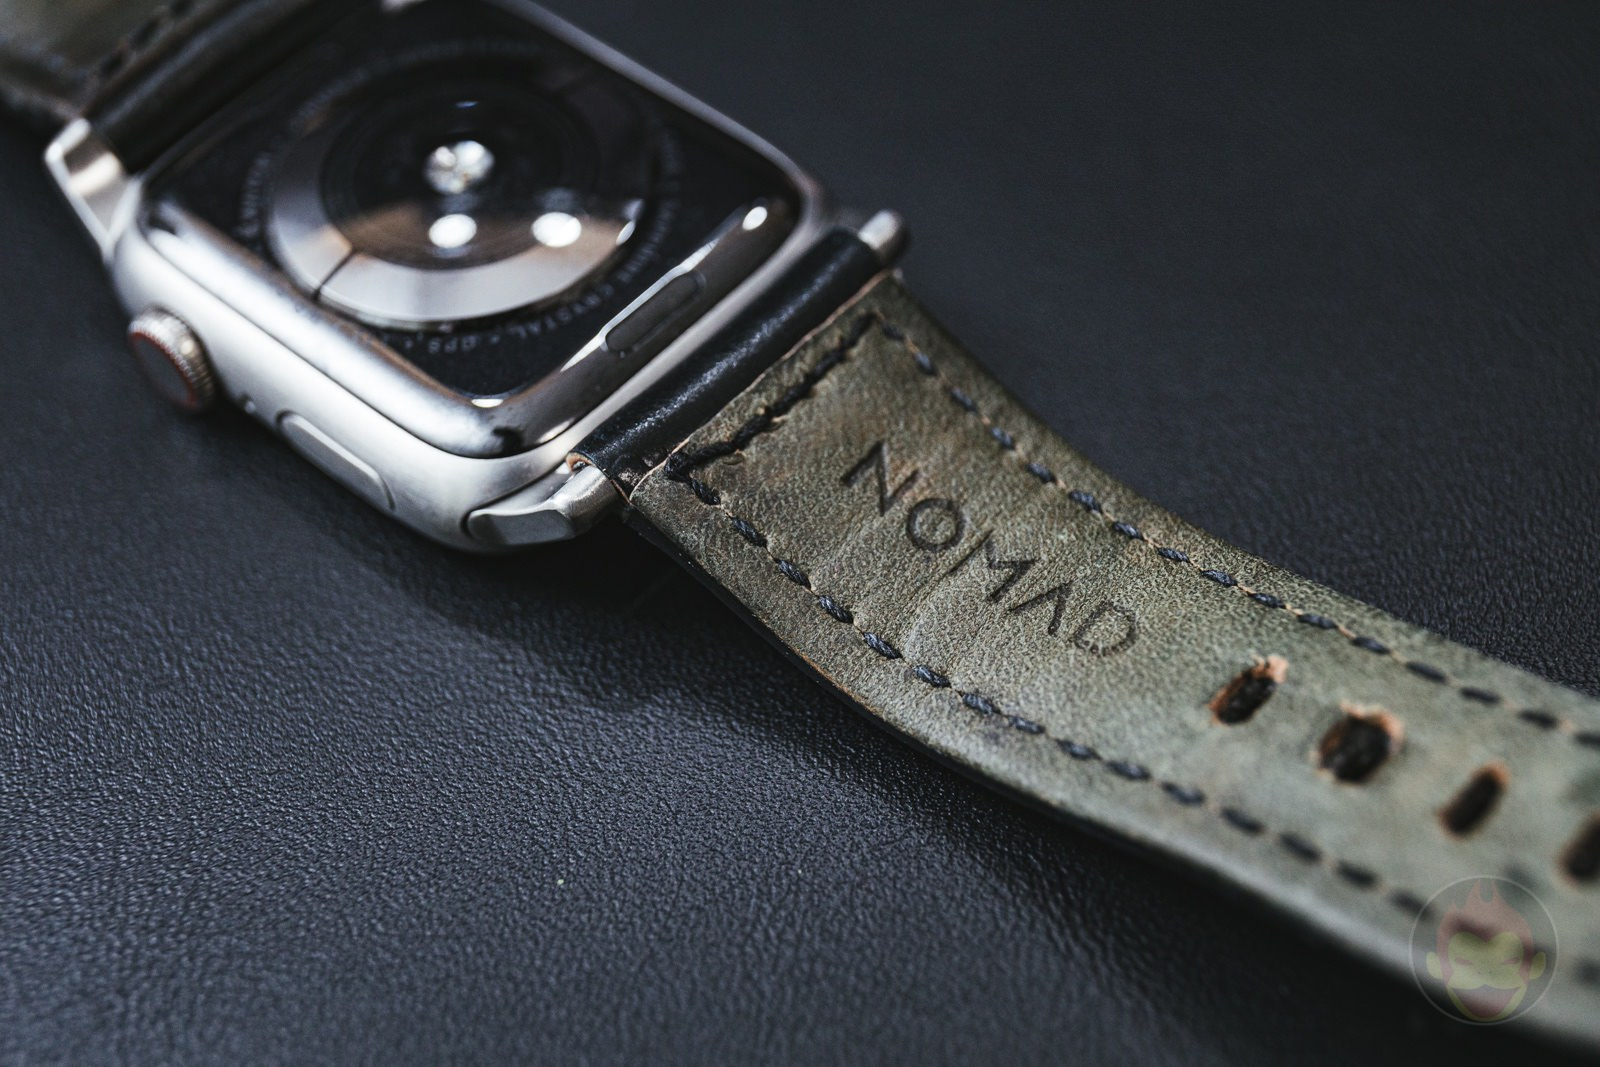 Apple-Watch-NOMAD-Shell-Cordovan-Strap-Review-02.jpg